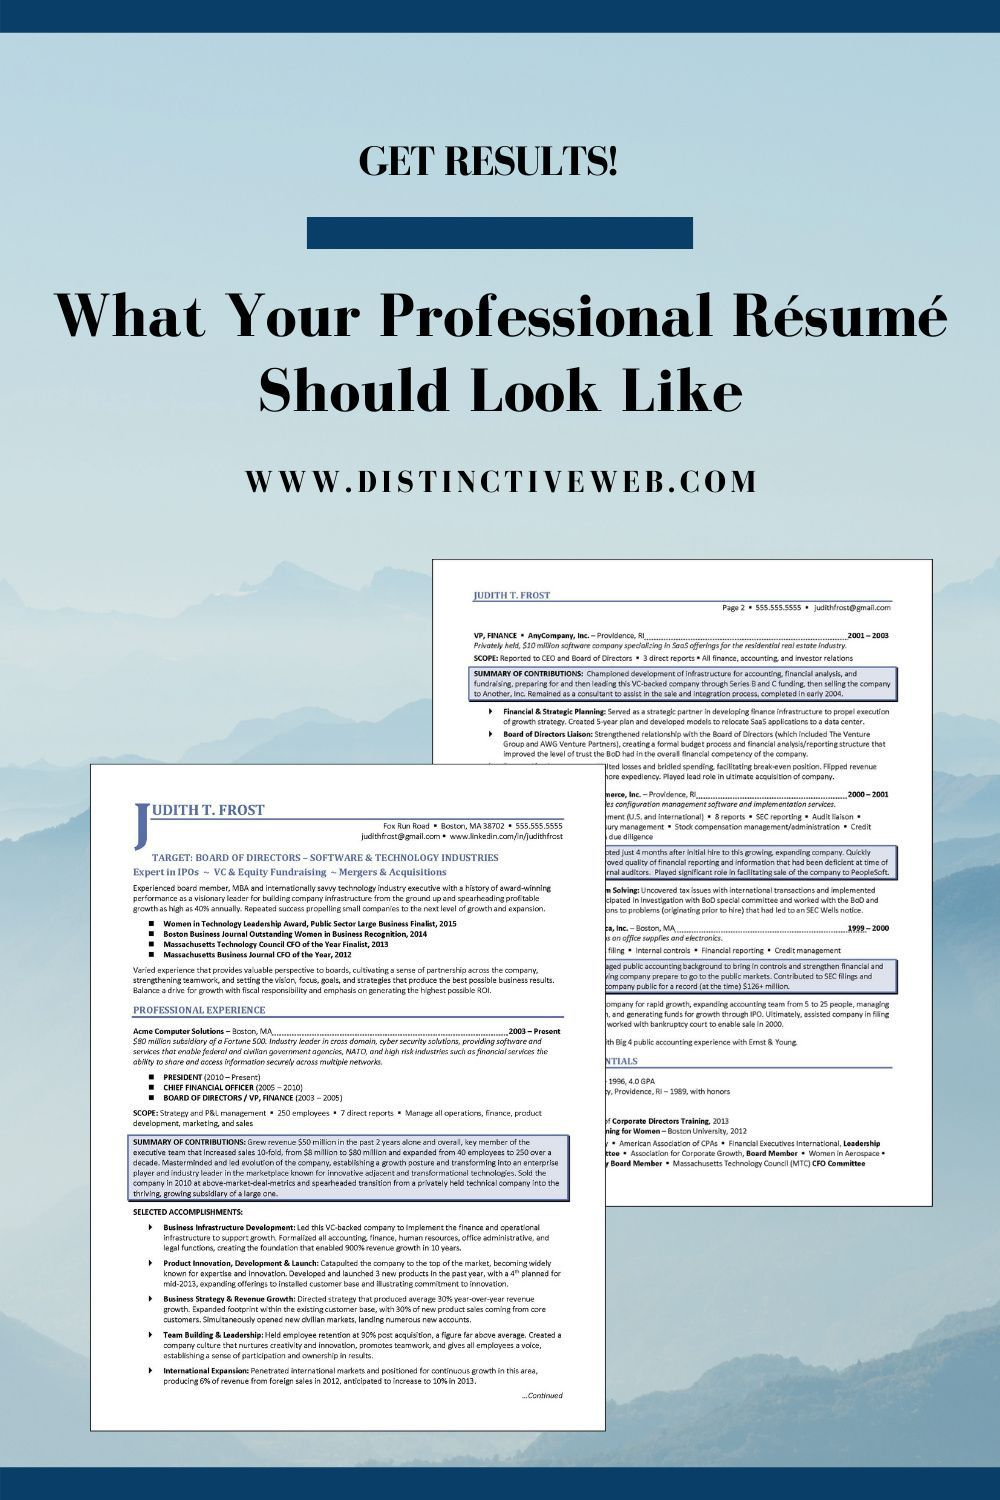 done for you resume templates in professional examples eye catching duplicity chief Resume Eye Catching Resume 2020